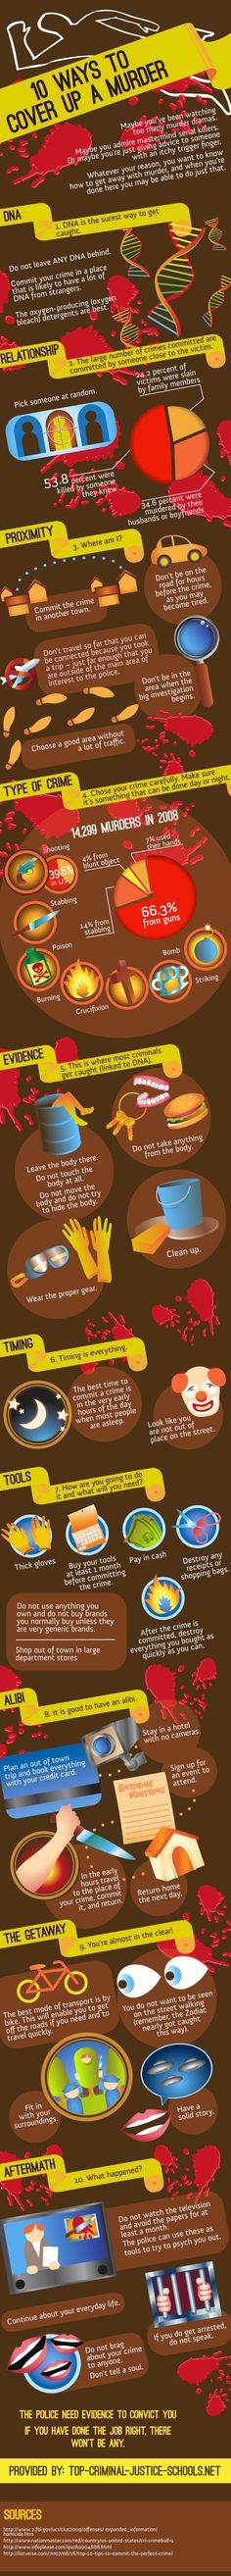 10 Ways To Cover Up A Murder - tongue in cheek infographic in honor of Dexter